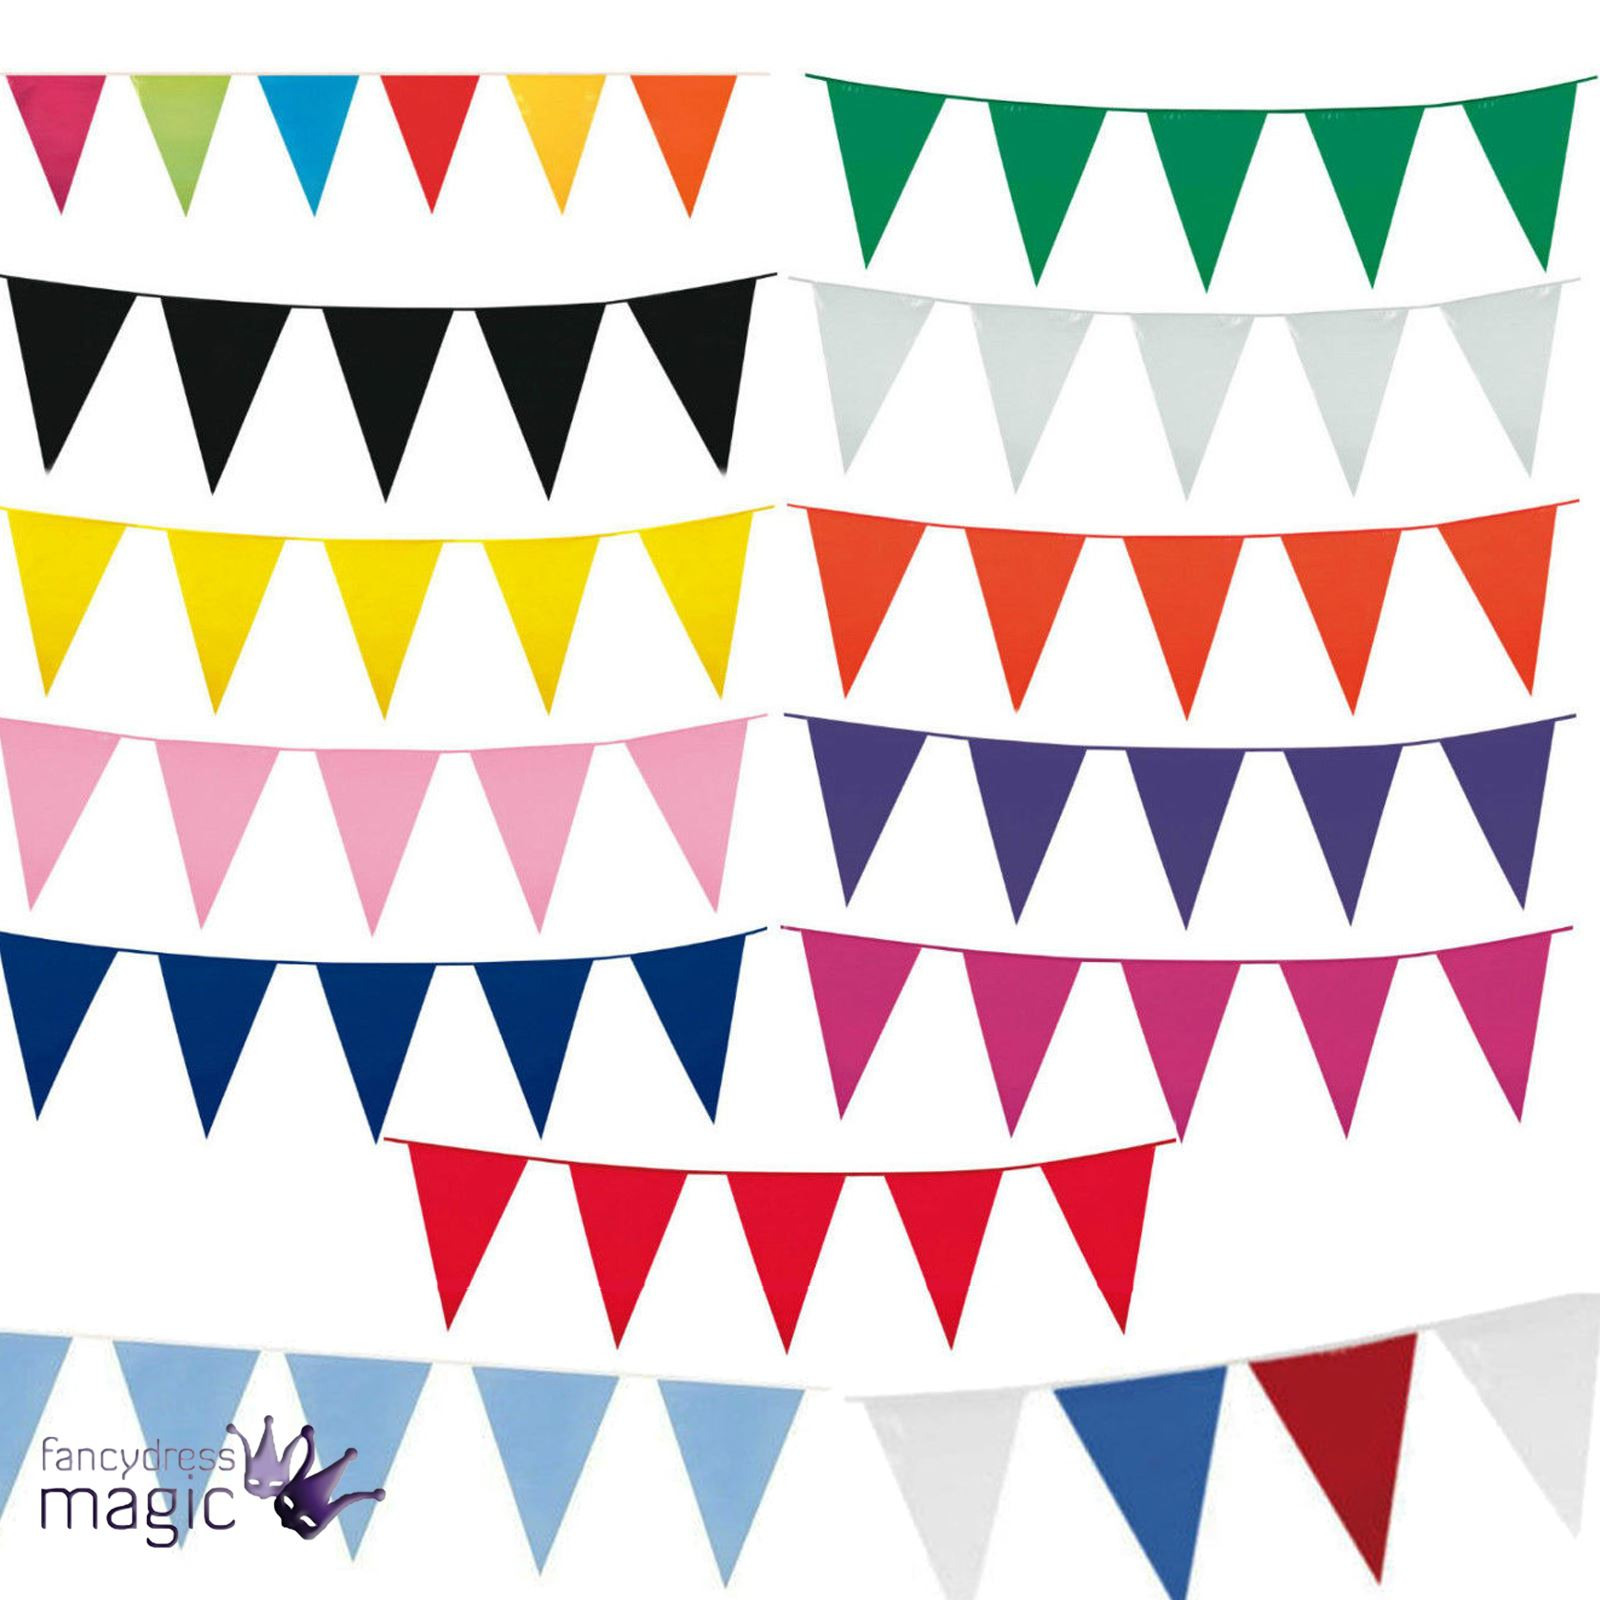 10m-Plastic-Bunting-Fete-Gala-Party-Banners-20-Flags-Giant-Indoor-Outdoor-Decor